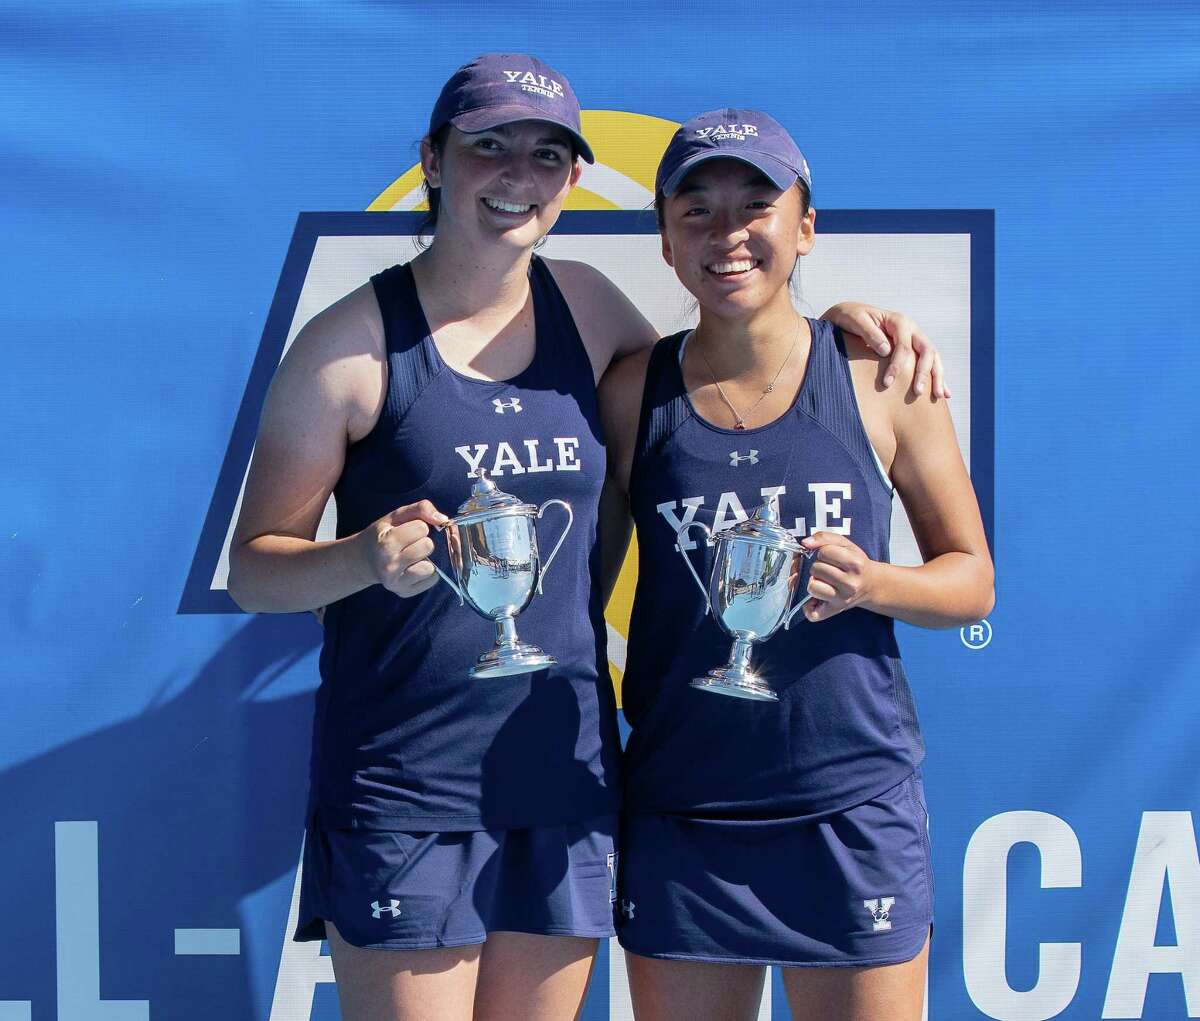 Yale doubles team Jessie Gong and Samantha Martinelli posted five wins over ranked teams during fall portion of the women's tennis schedule.